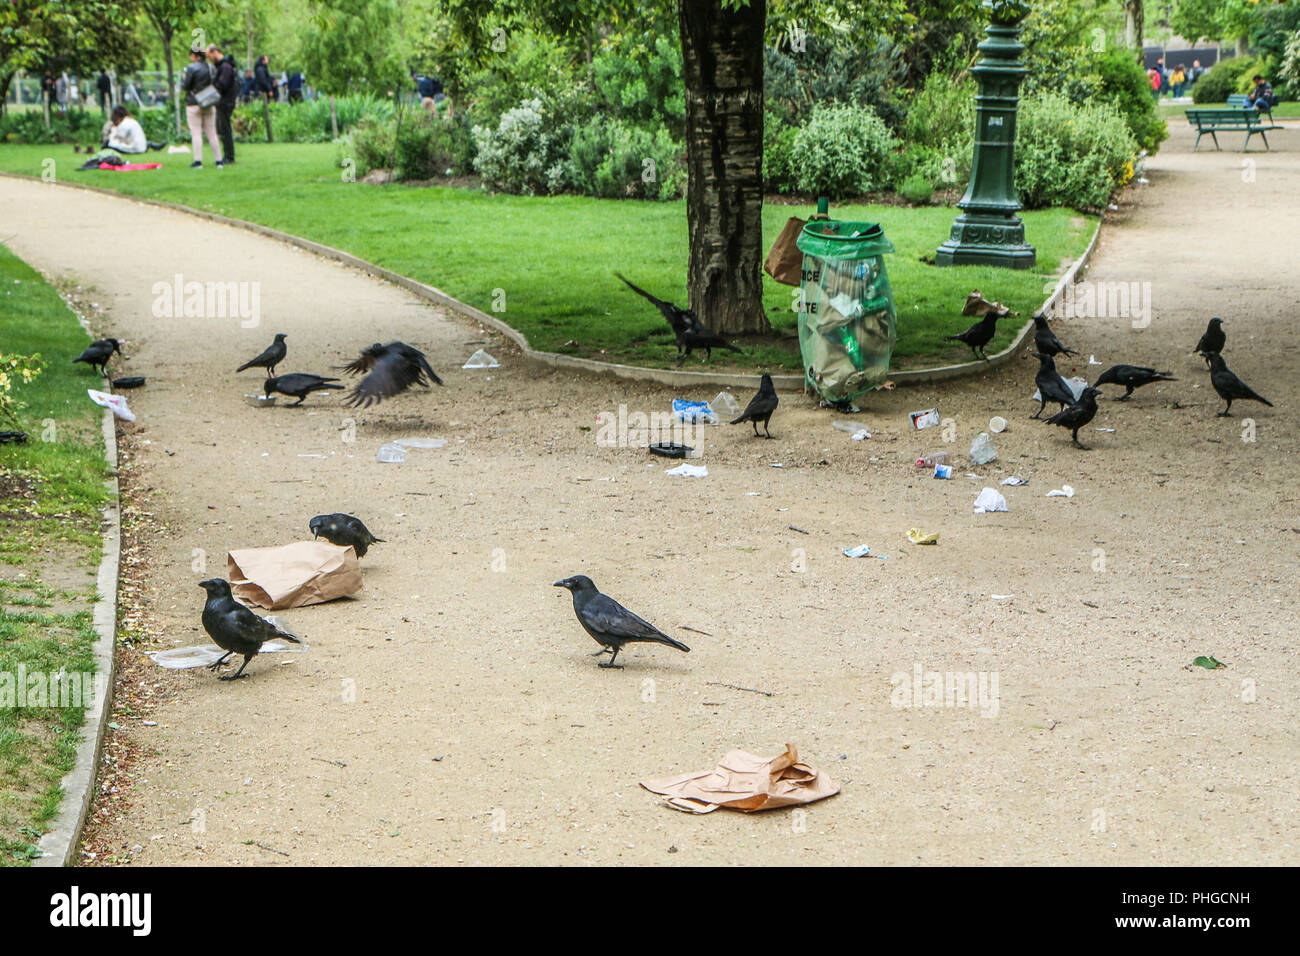 A Picture of a flock of crows eating garbage from a trash bin and doing mess in the public park. - Stock Image